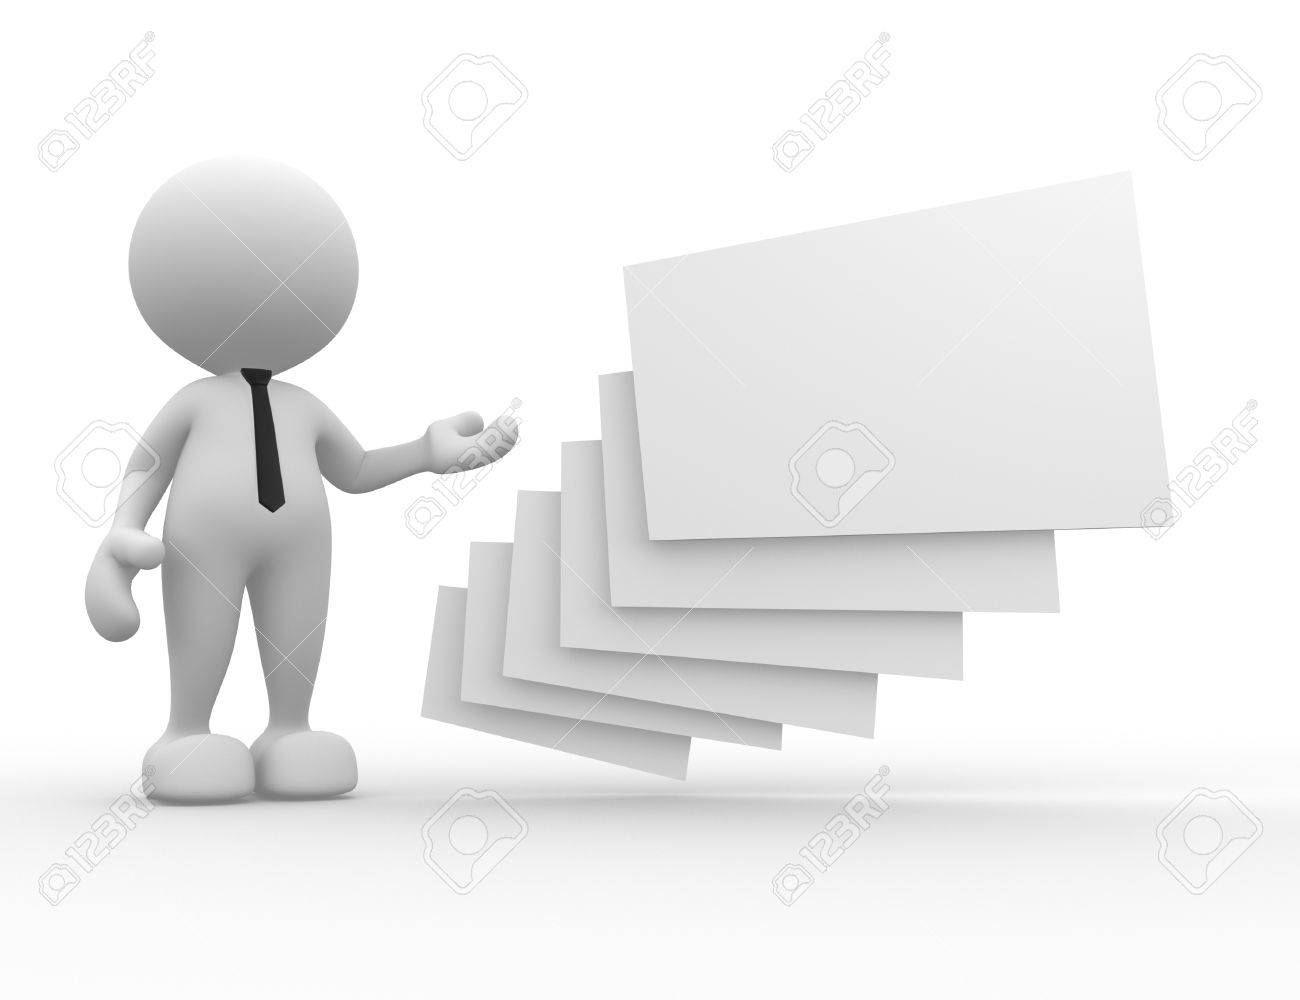 3d People - Man, Person With Blank Frames Stock Photo, Picture And ...